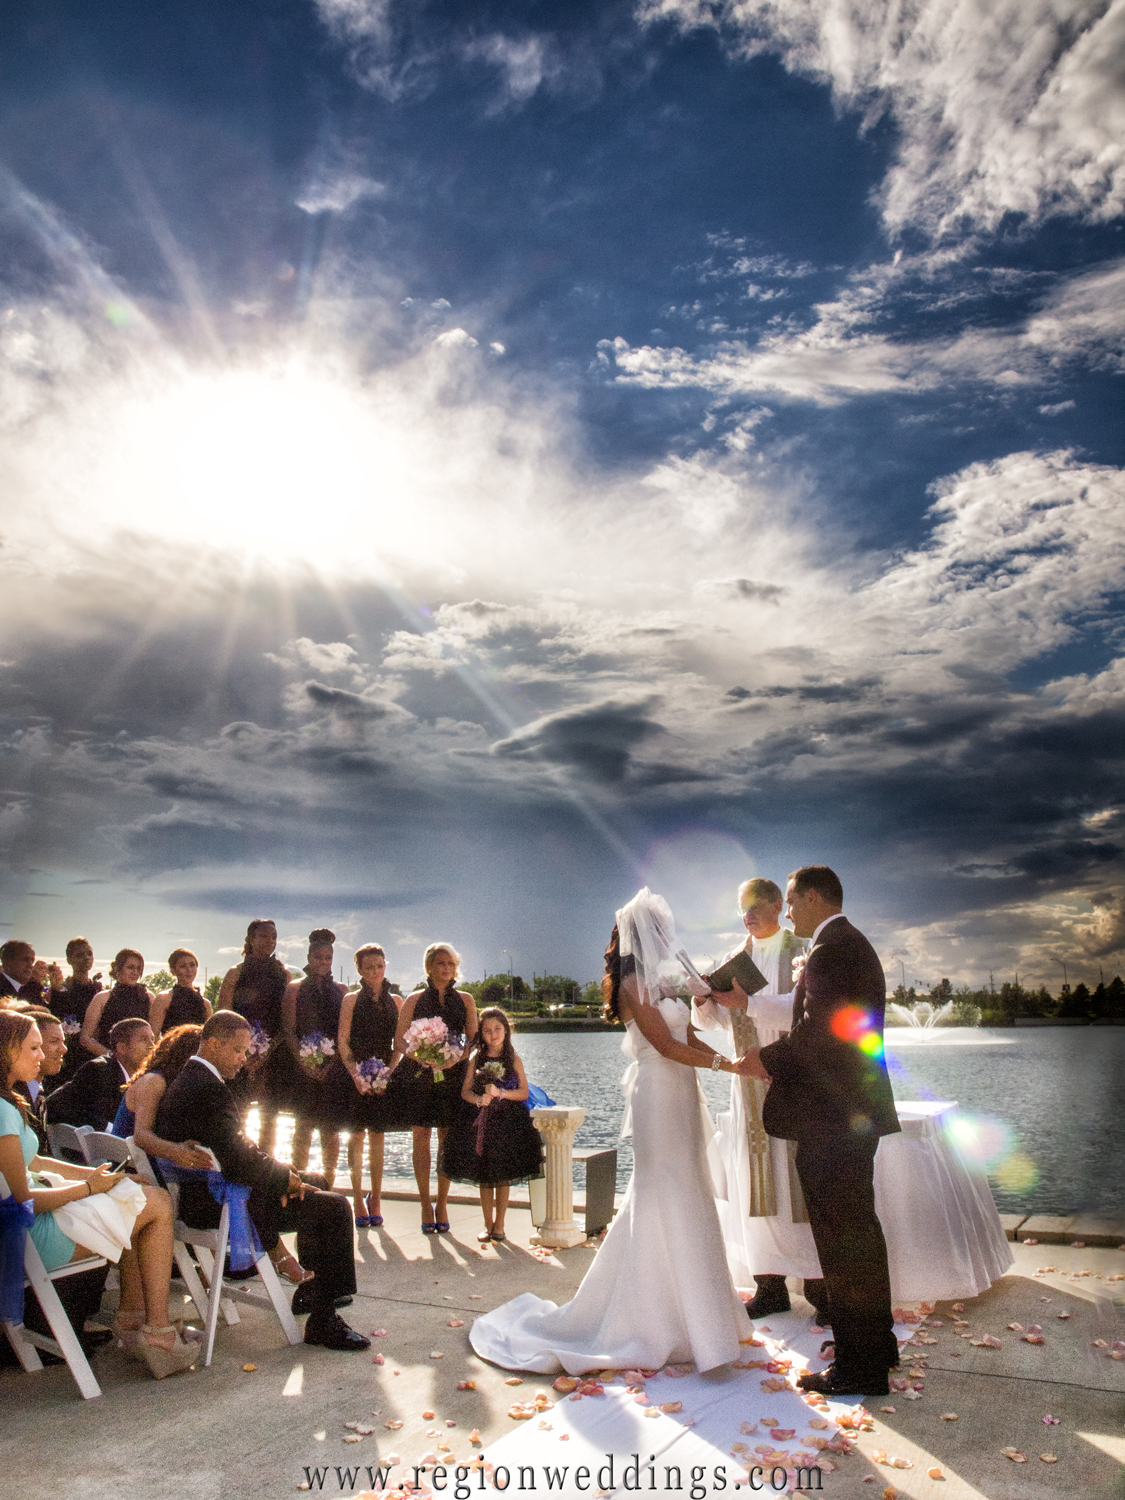 The sun shines down upon an outdoor wedding ceremony at Centennial Park in Munster, Indiana.